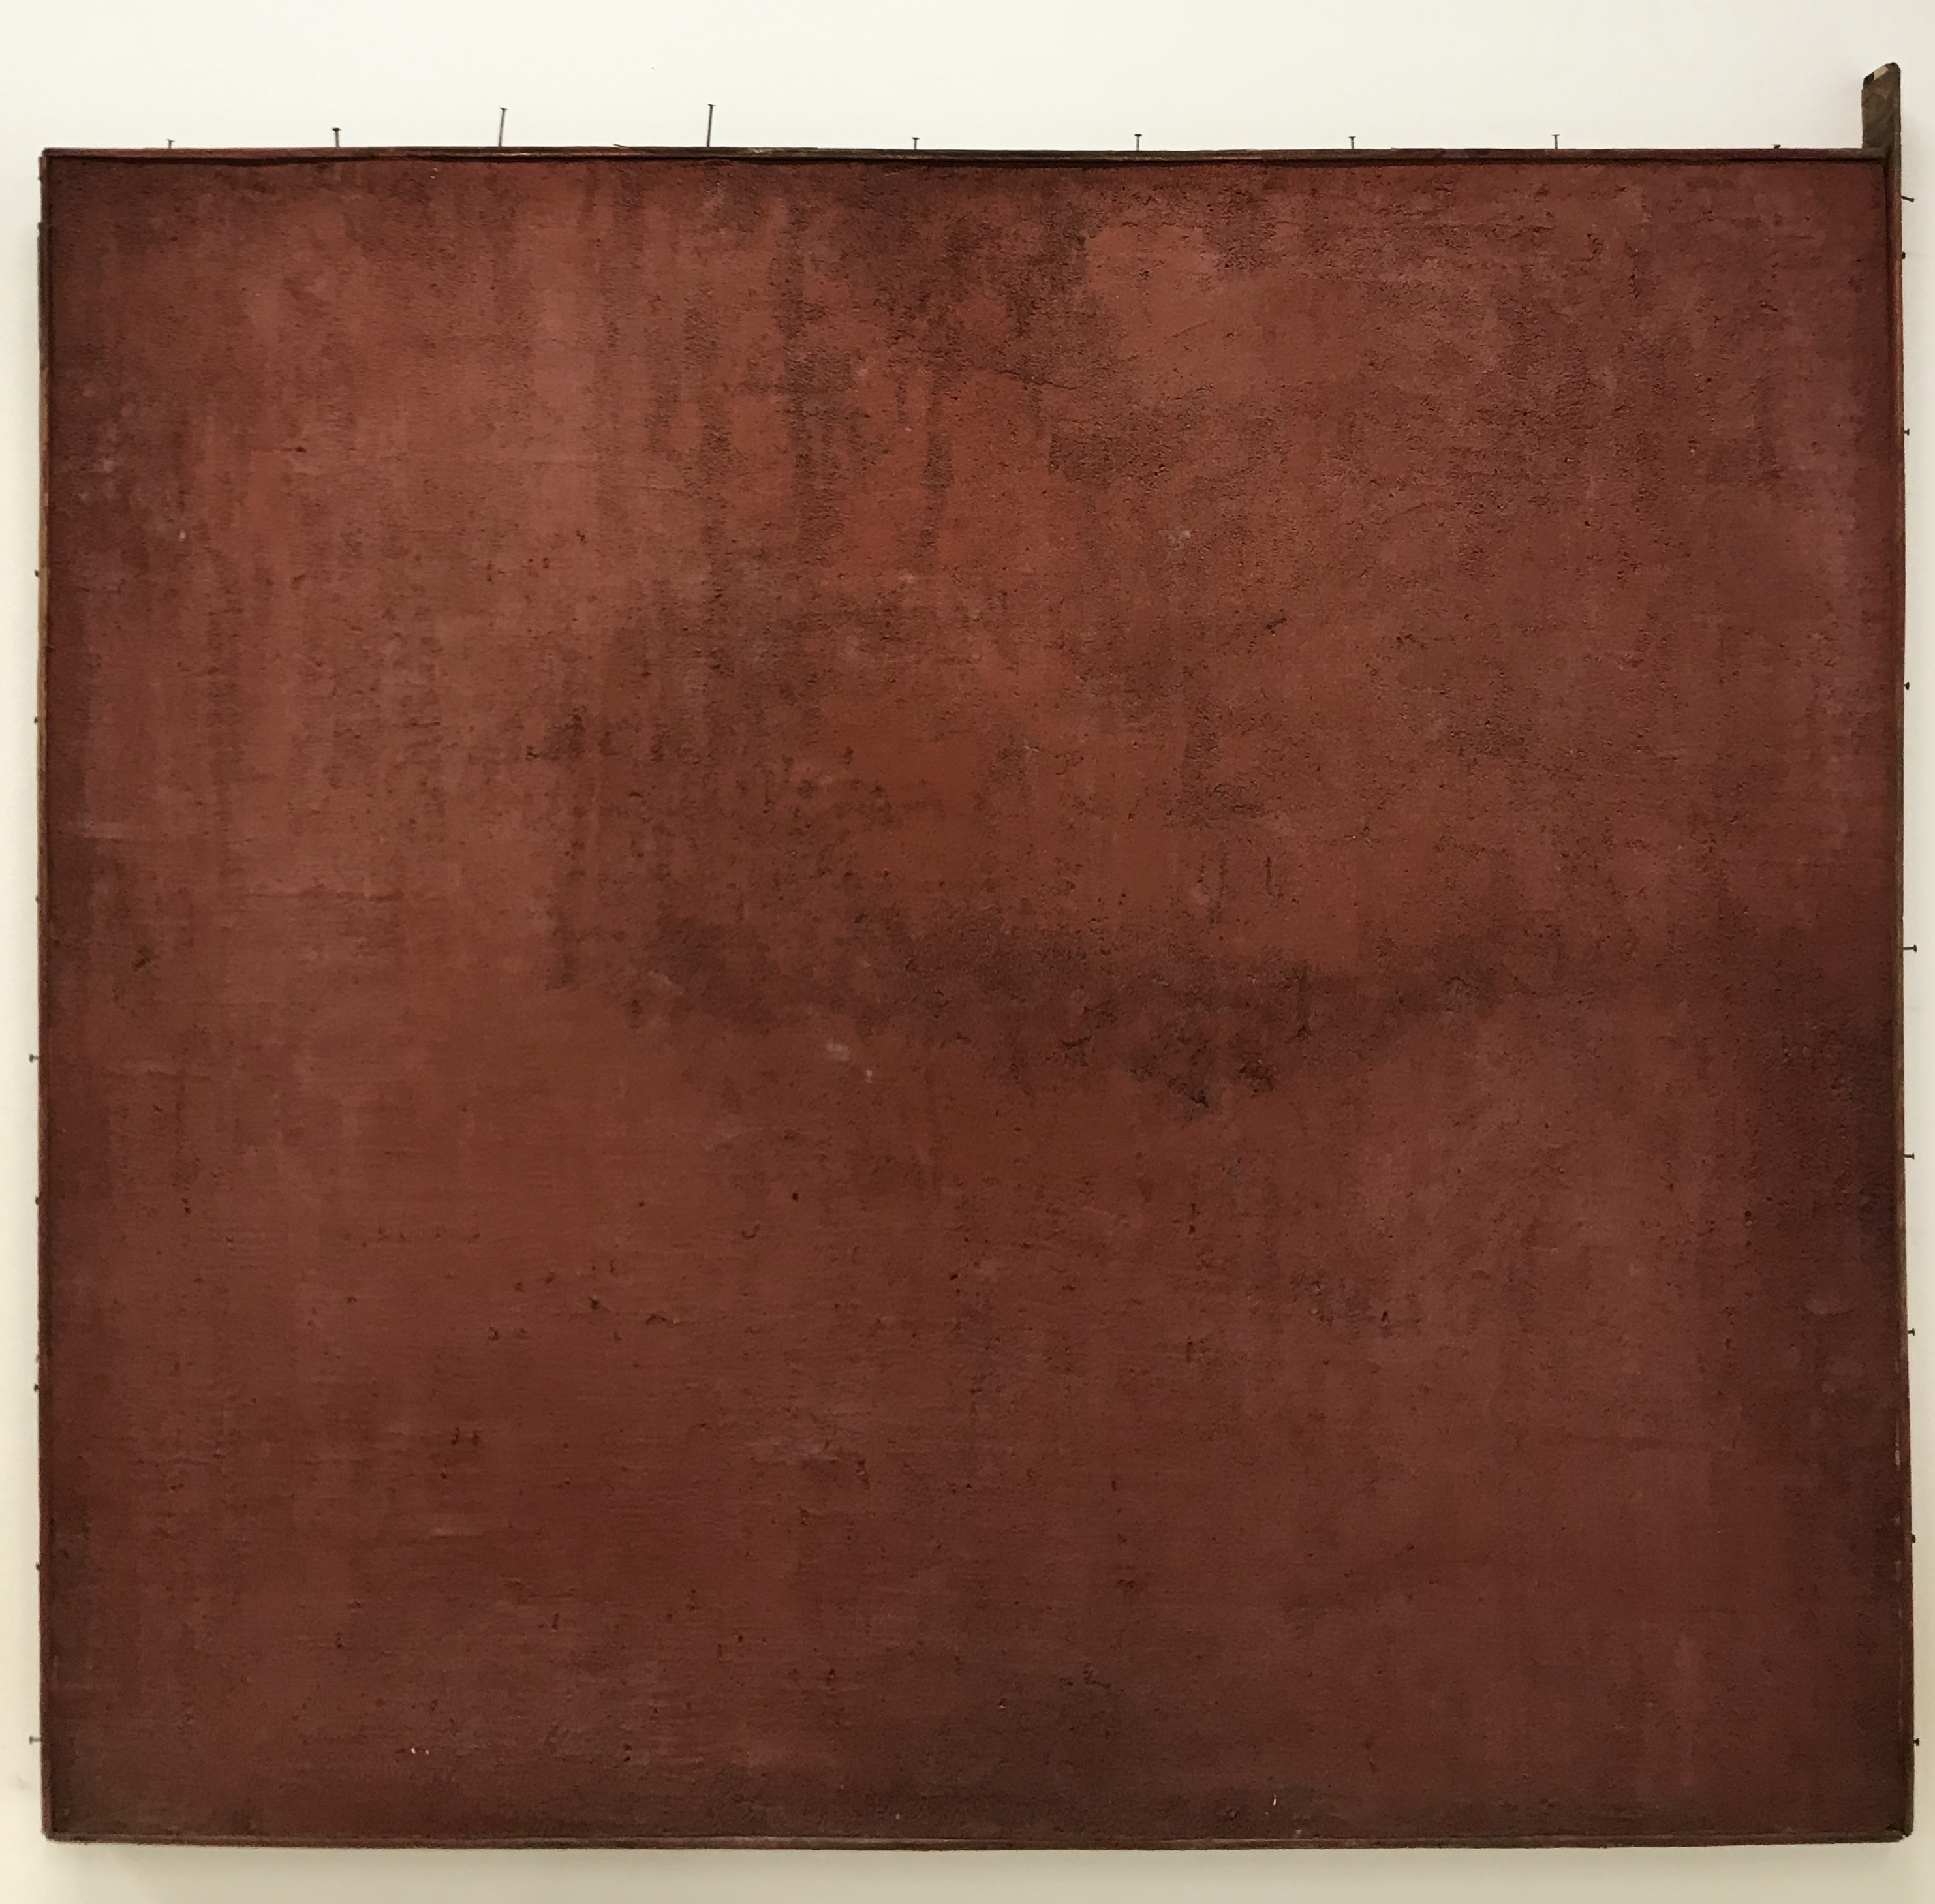 David Ireland Untitled (Cement Painting—Red)